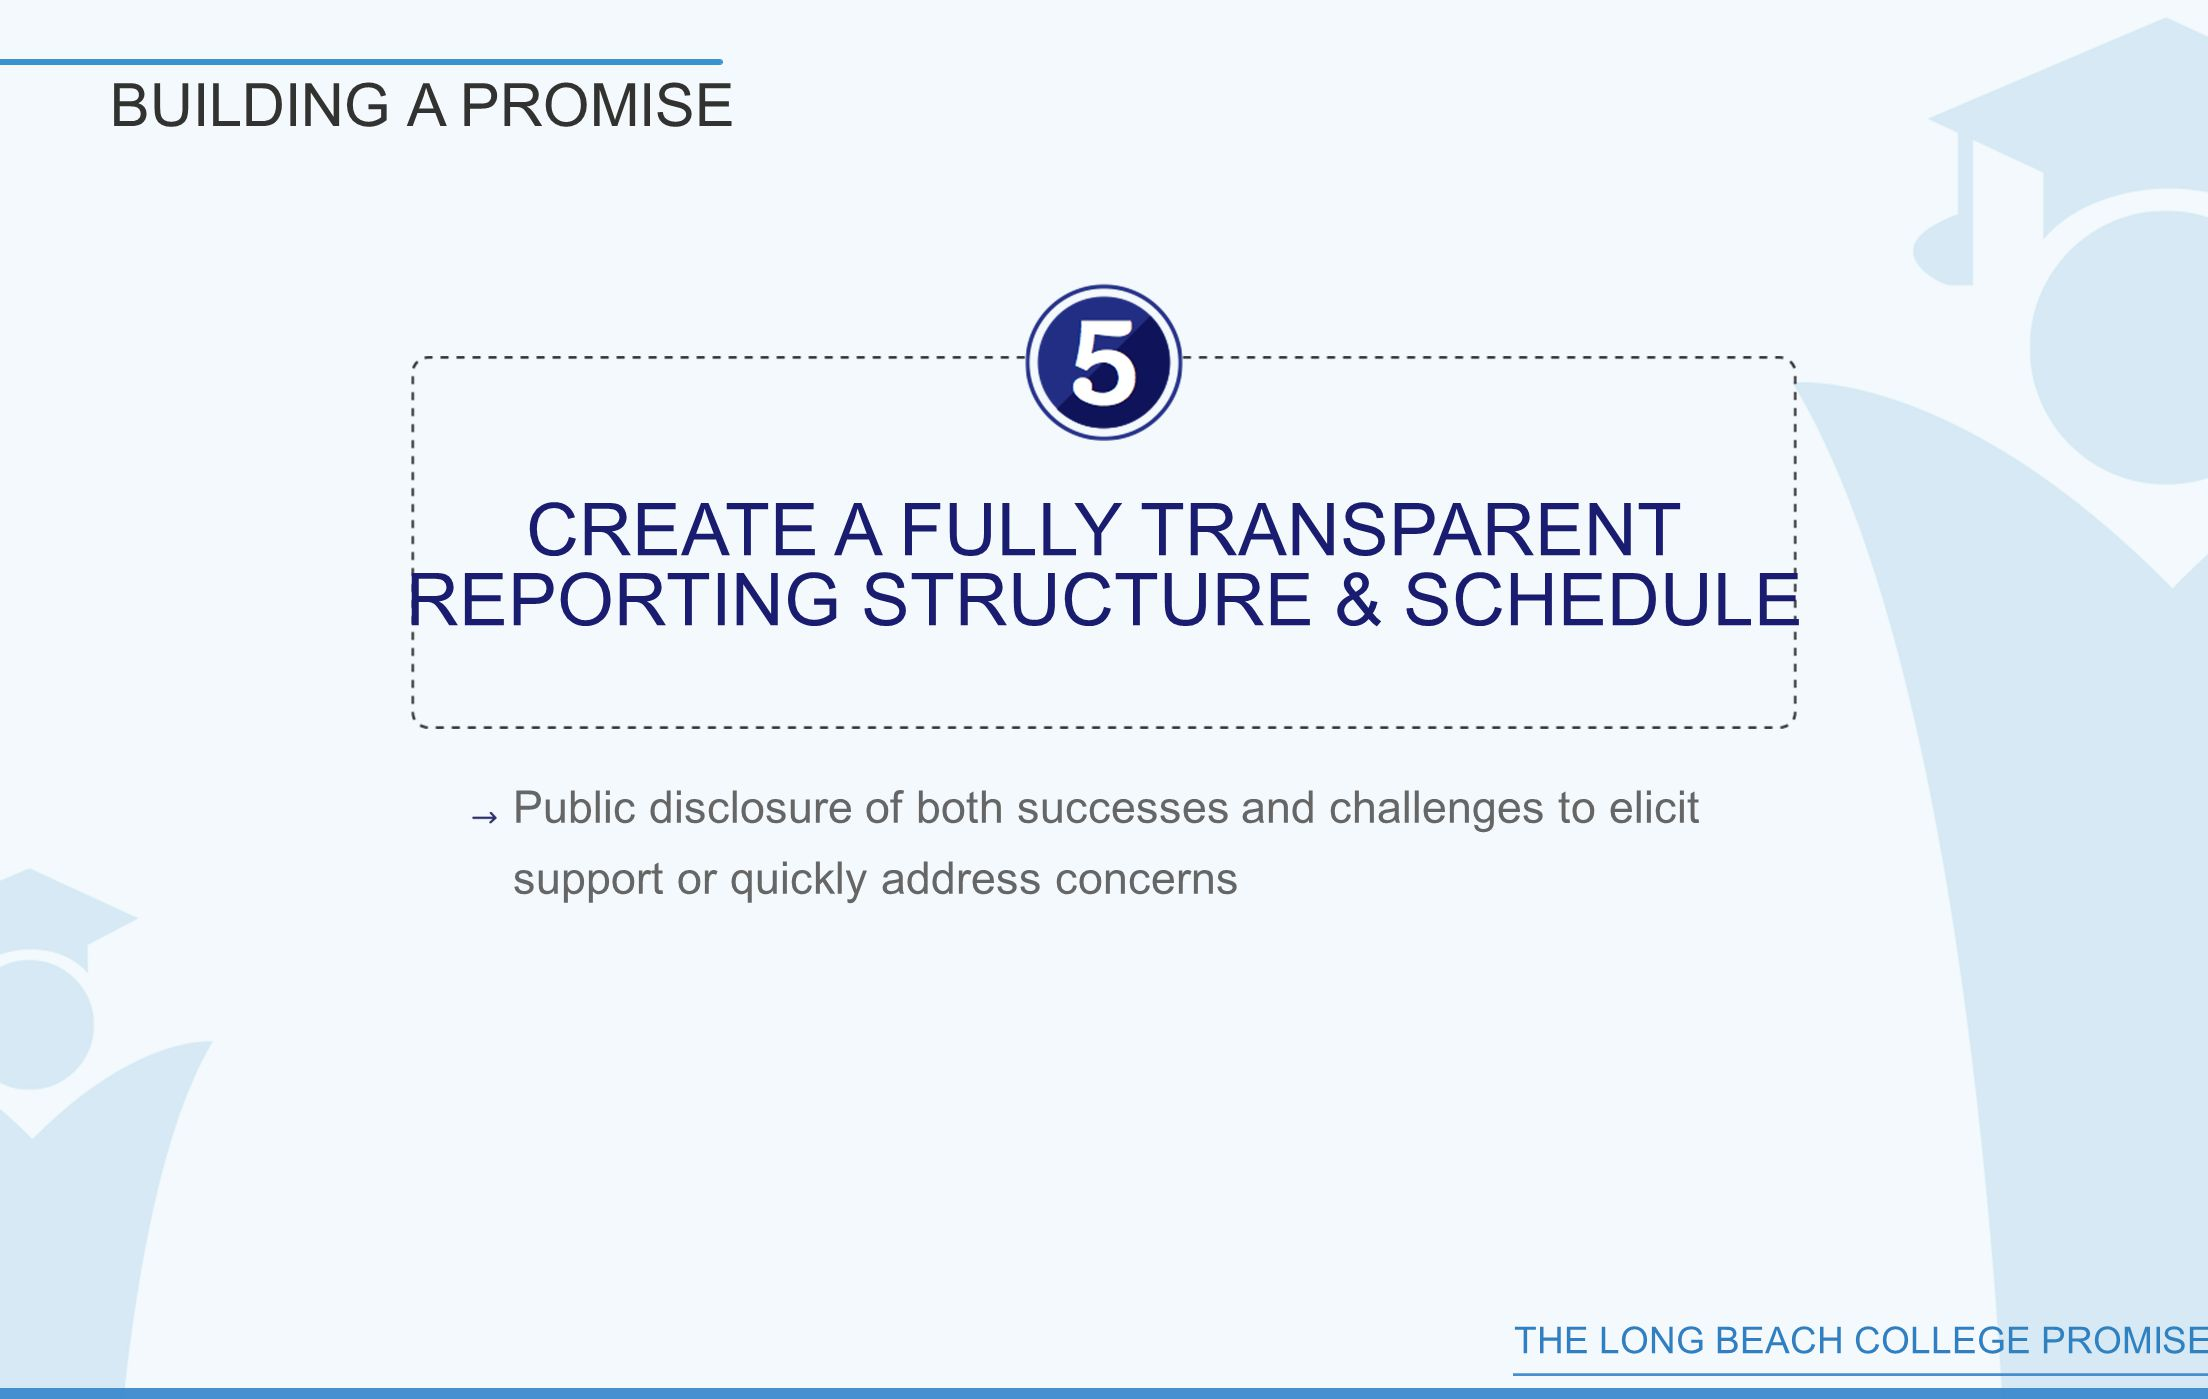 THE LONG BEACH COLLEGE PROMISE BUILDING A PROMISE CREATE A FULLY TRANSPARENT REPORTING STRUCTURE & SCHEDULE Public disclosure of both successes and challenges to elicit support or quickly address concerns